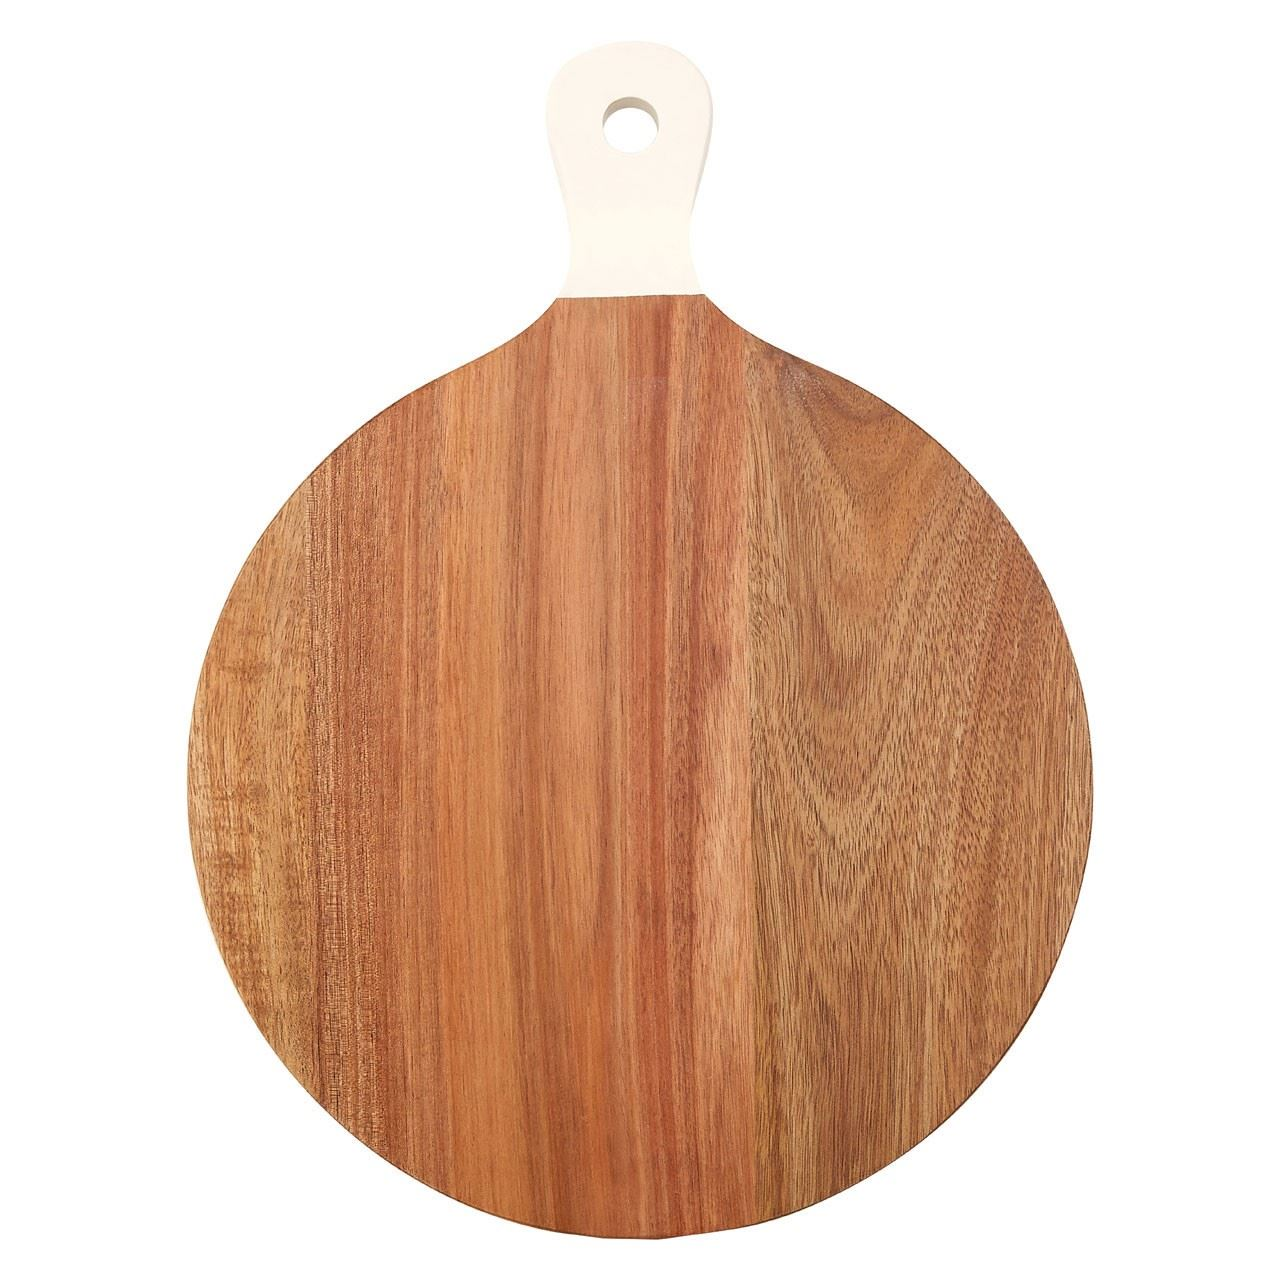 Chopping-Boards-Wooden-Cutting-Serving-Naturally-Antibacterial thumbnail 15